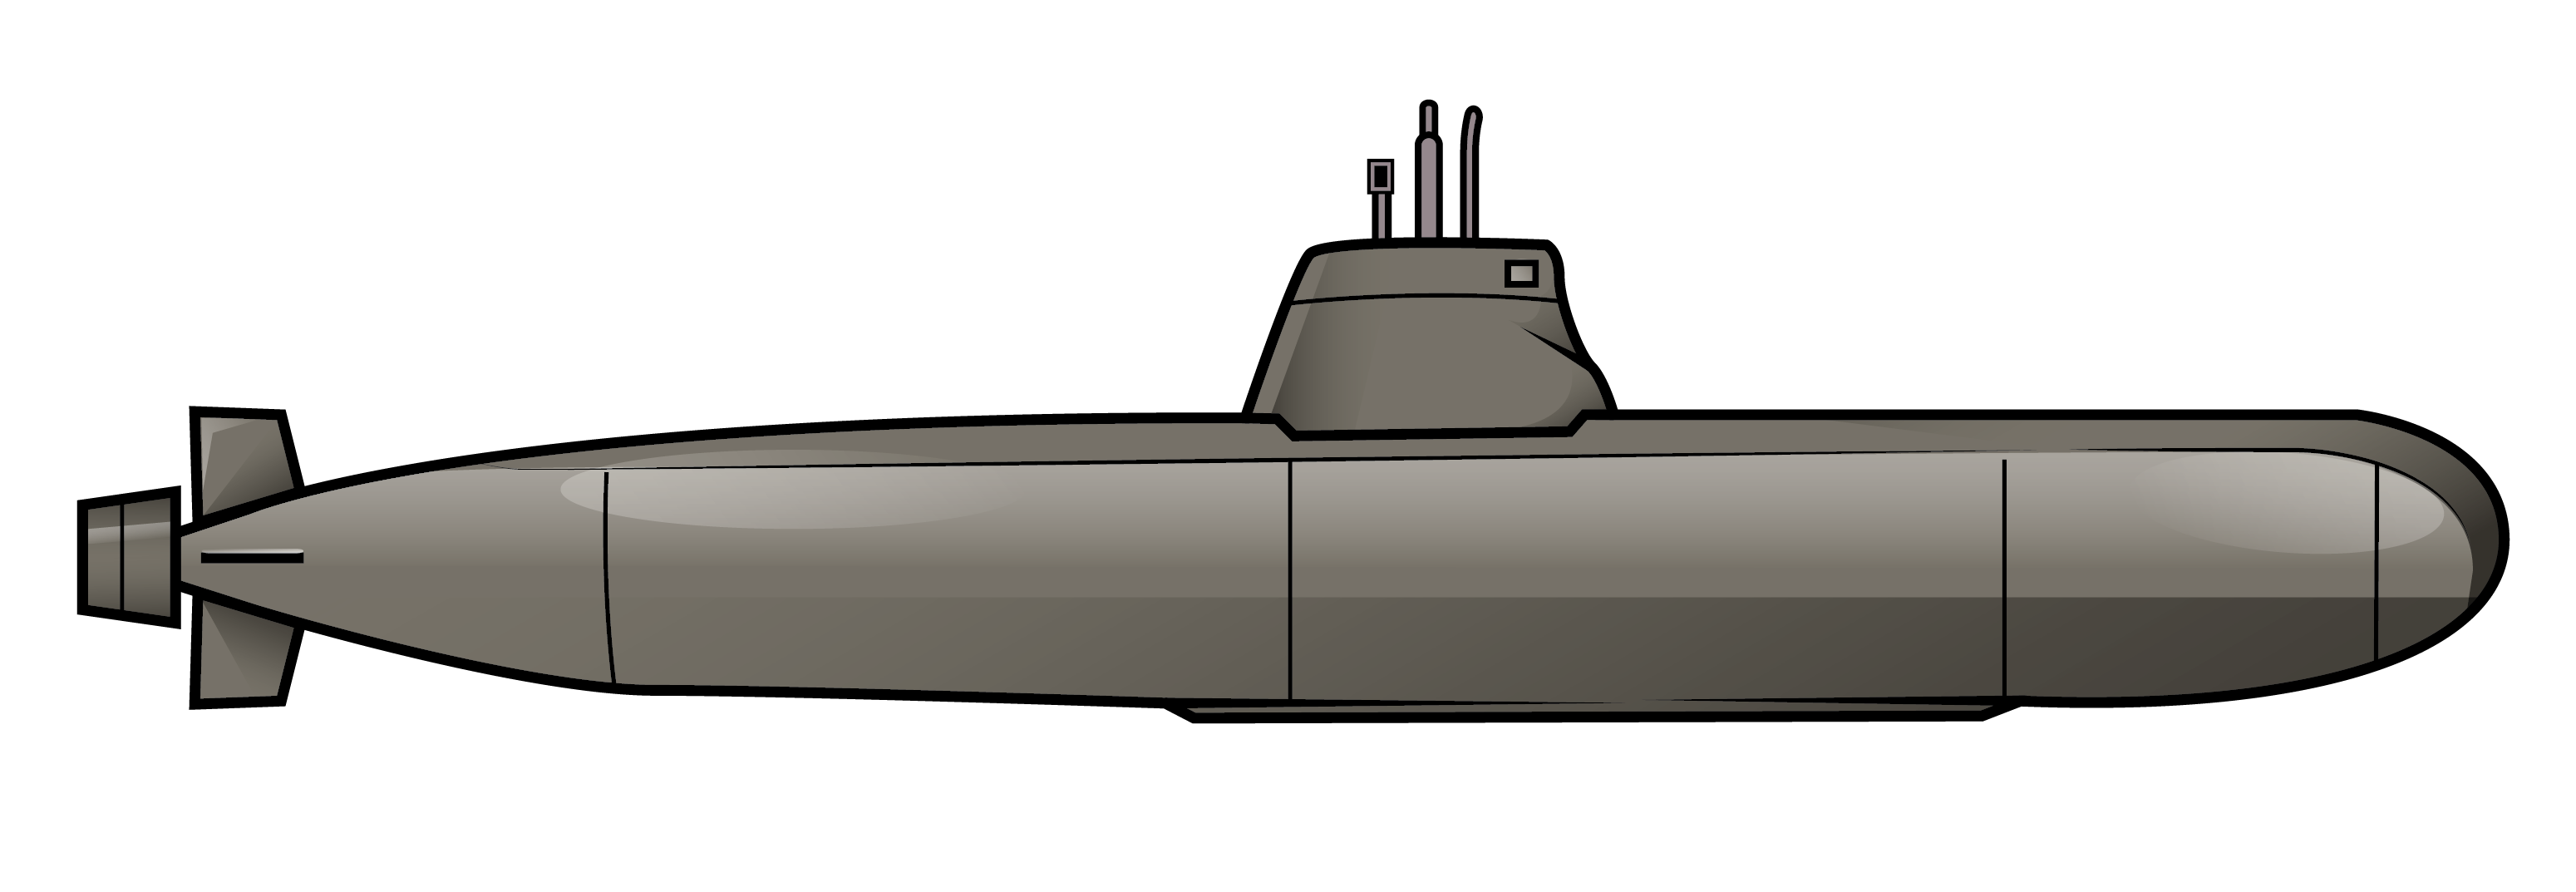 Submarine Clipart at GetDrawings